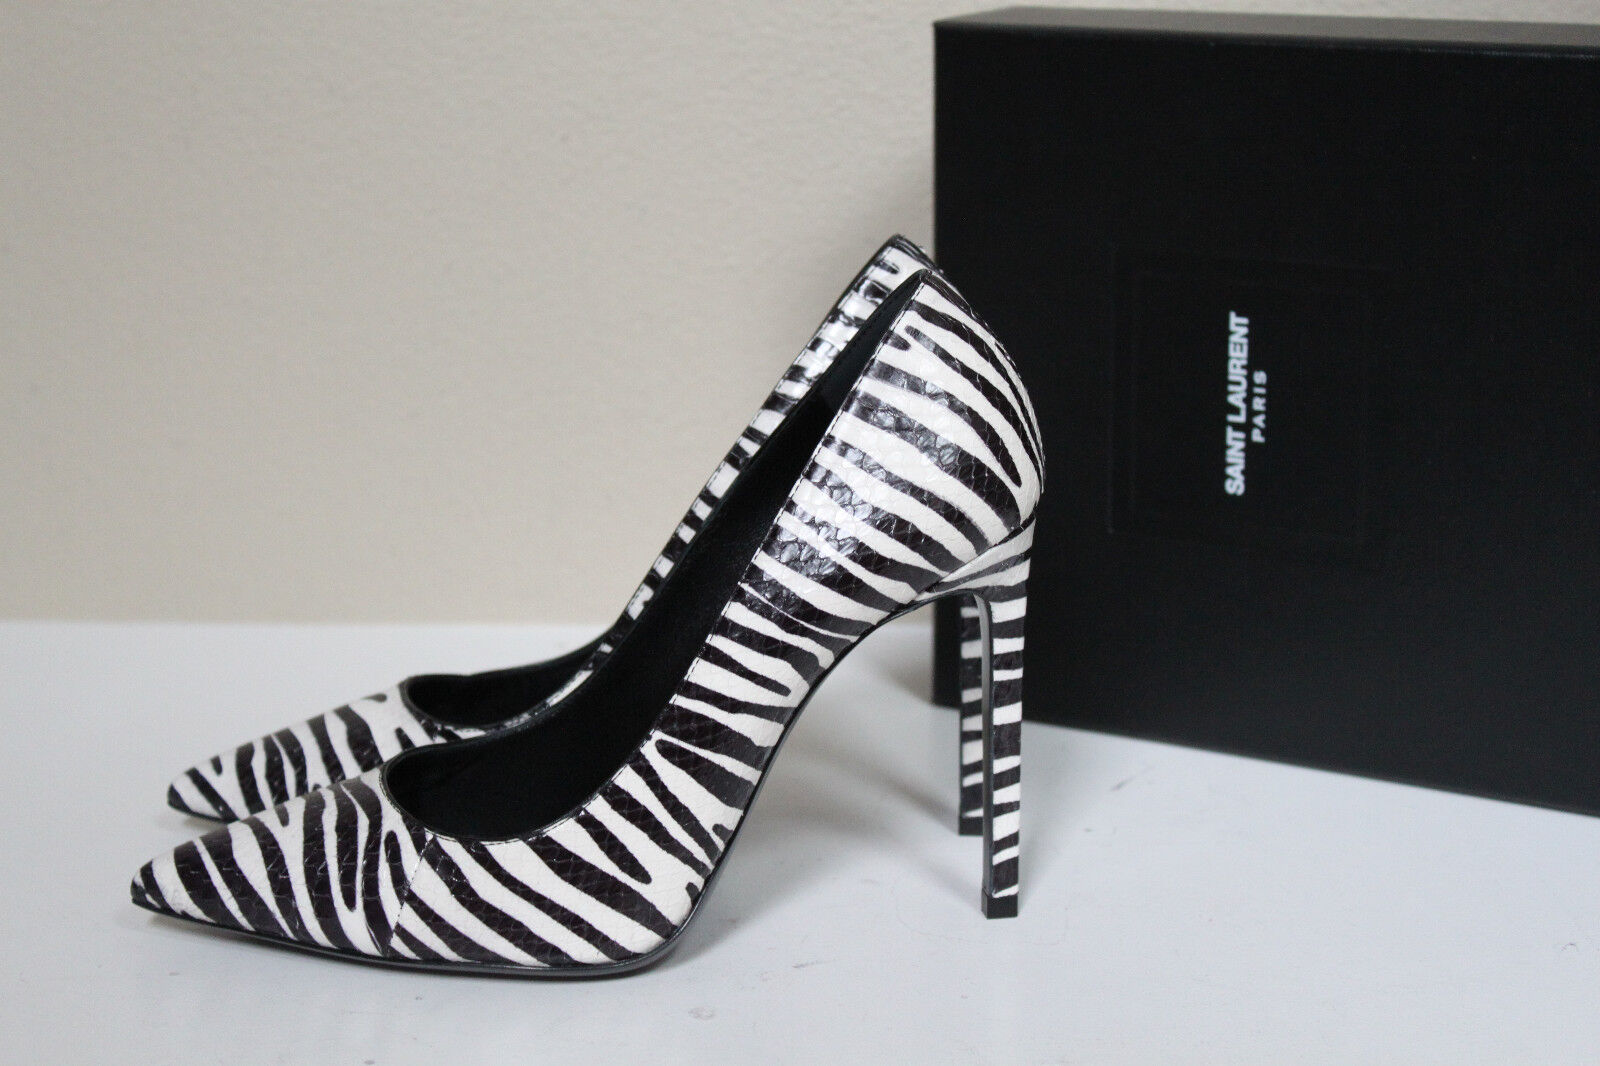 sz 6 / 36 Saint Laurent Classic Paris Zebra Python Leather Point Toe Pump Shoes